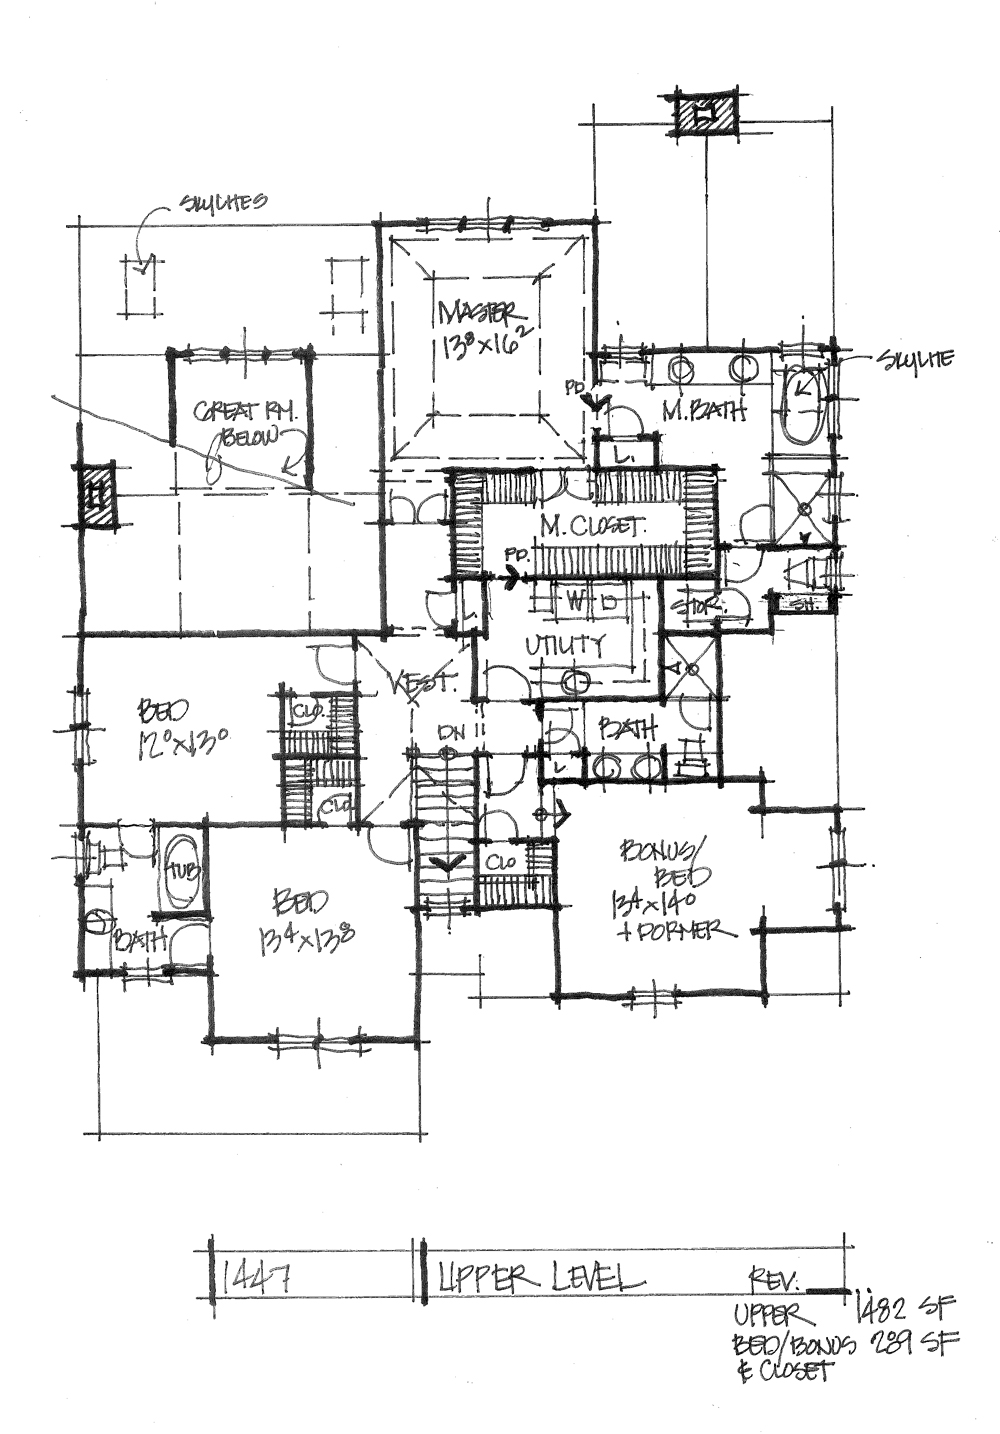 conceptual house plan 1447 urban design houseplansblog check out the second floor plan of house plan 1447